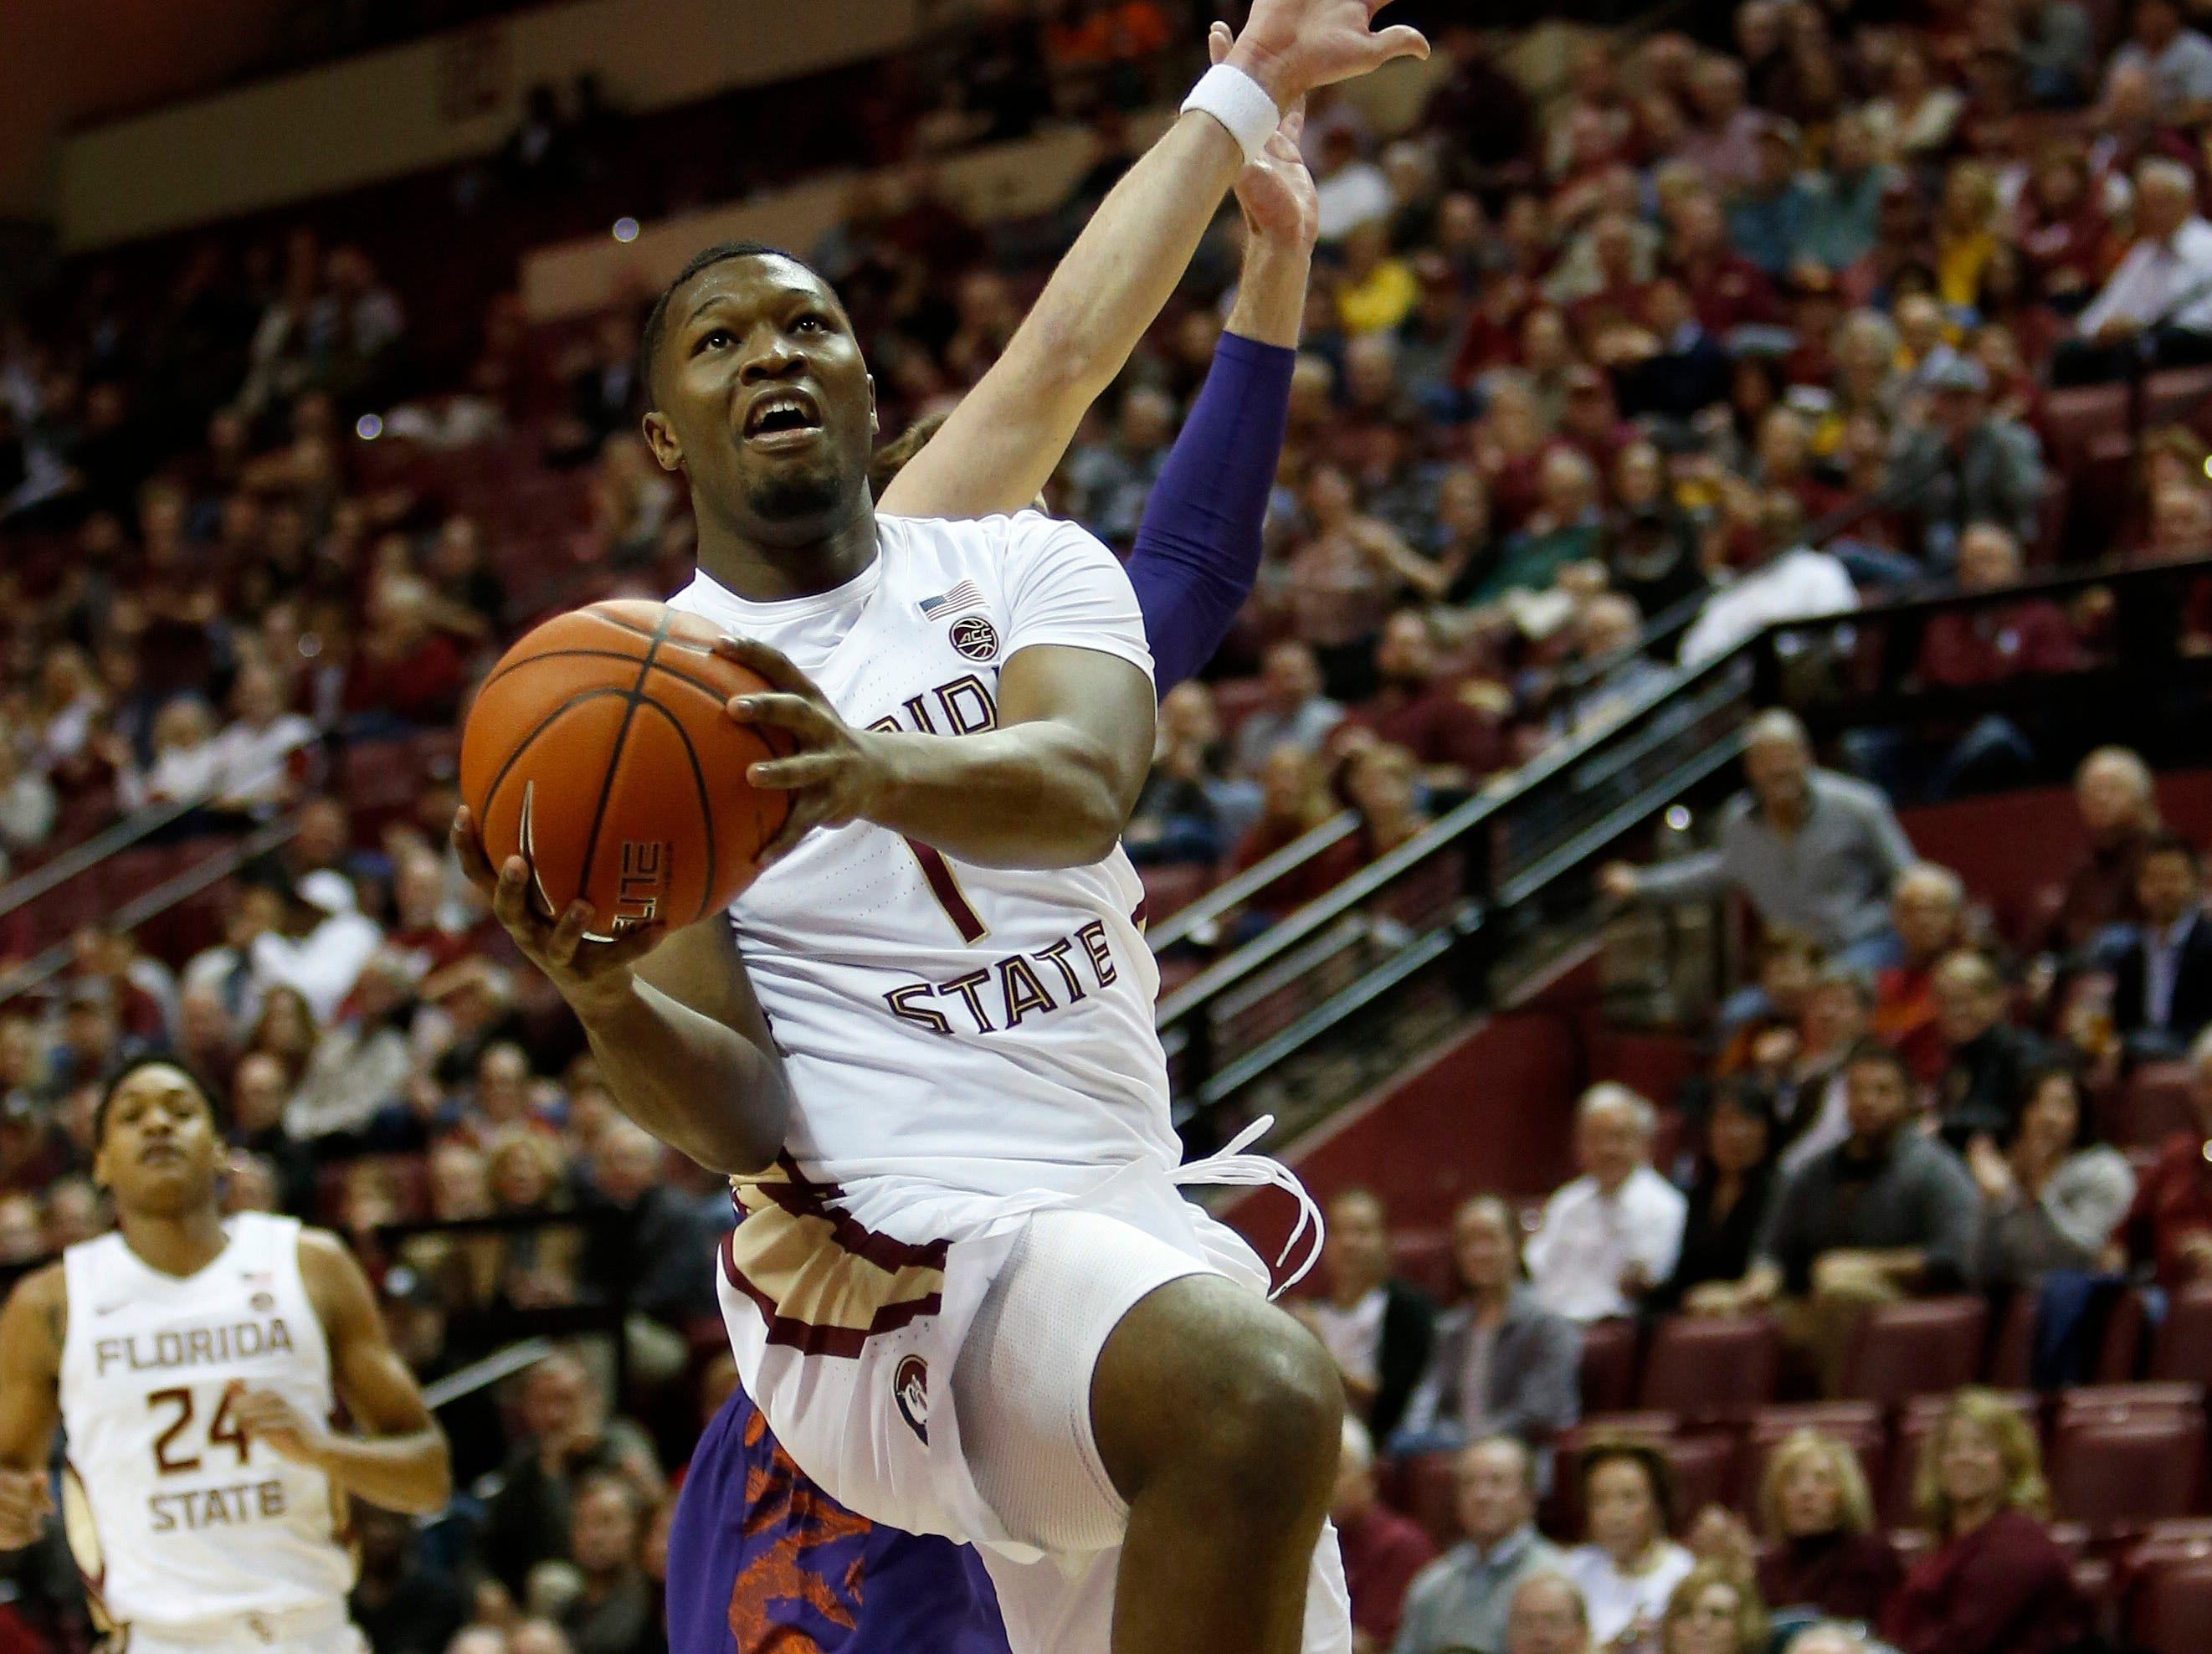 Jan 22, 2019; Tallahassee, FL, USA; Florida State Seminoles forward Raiquan Gray (1) scores on a layup against the Clemson Tigers during the first half at Donald L. Tucker Center. Mandatory Credit: Glenn Beil-USA TODAY Sports